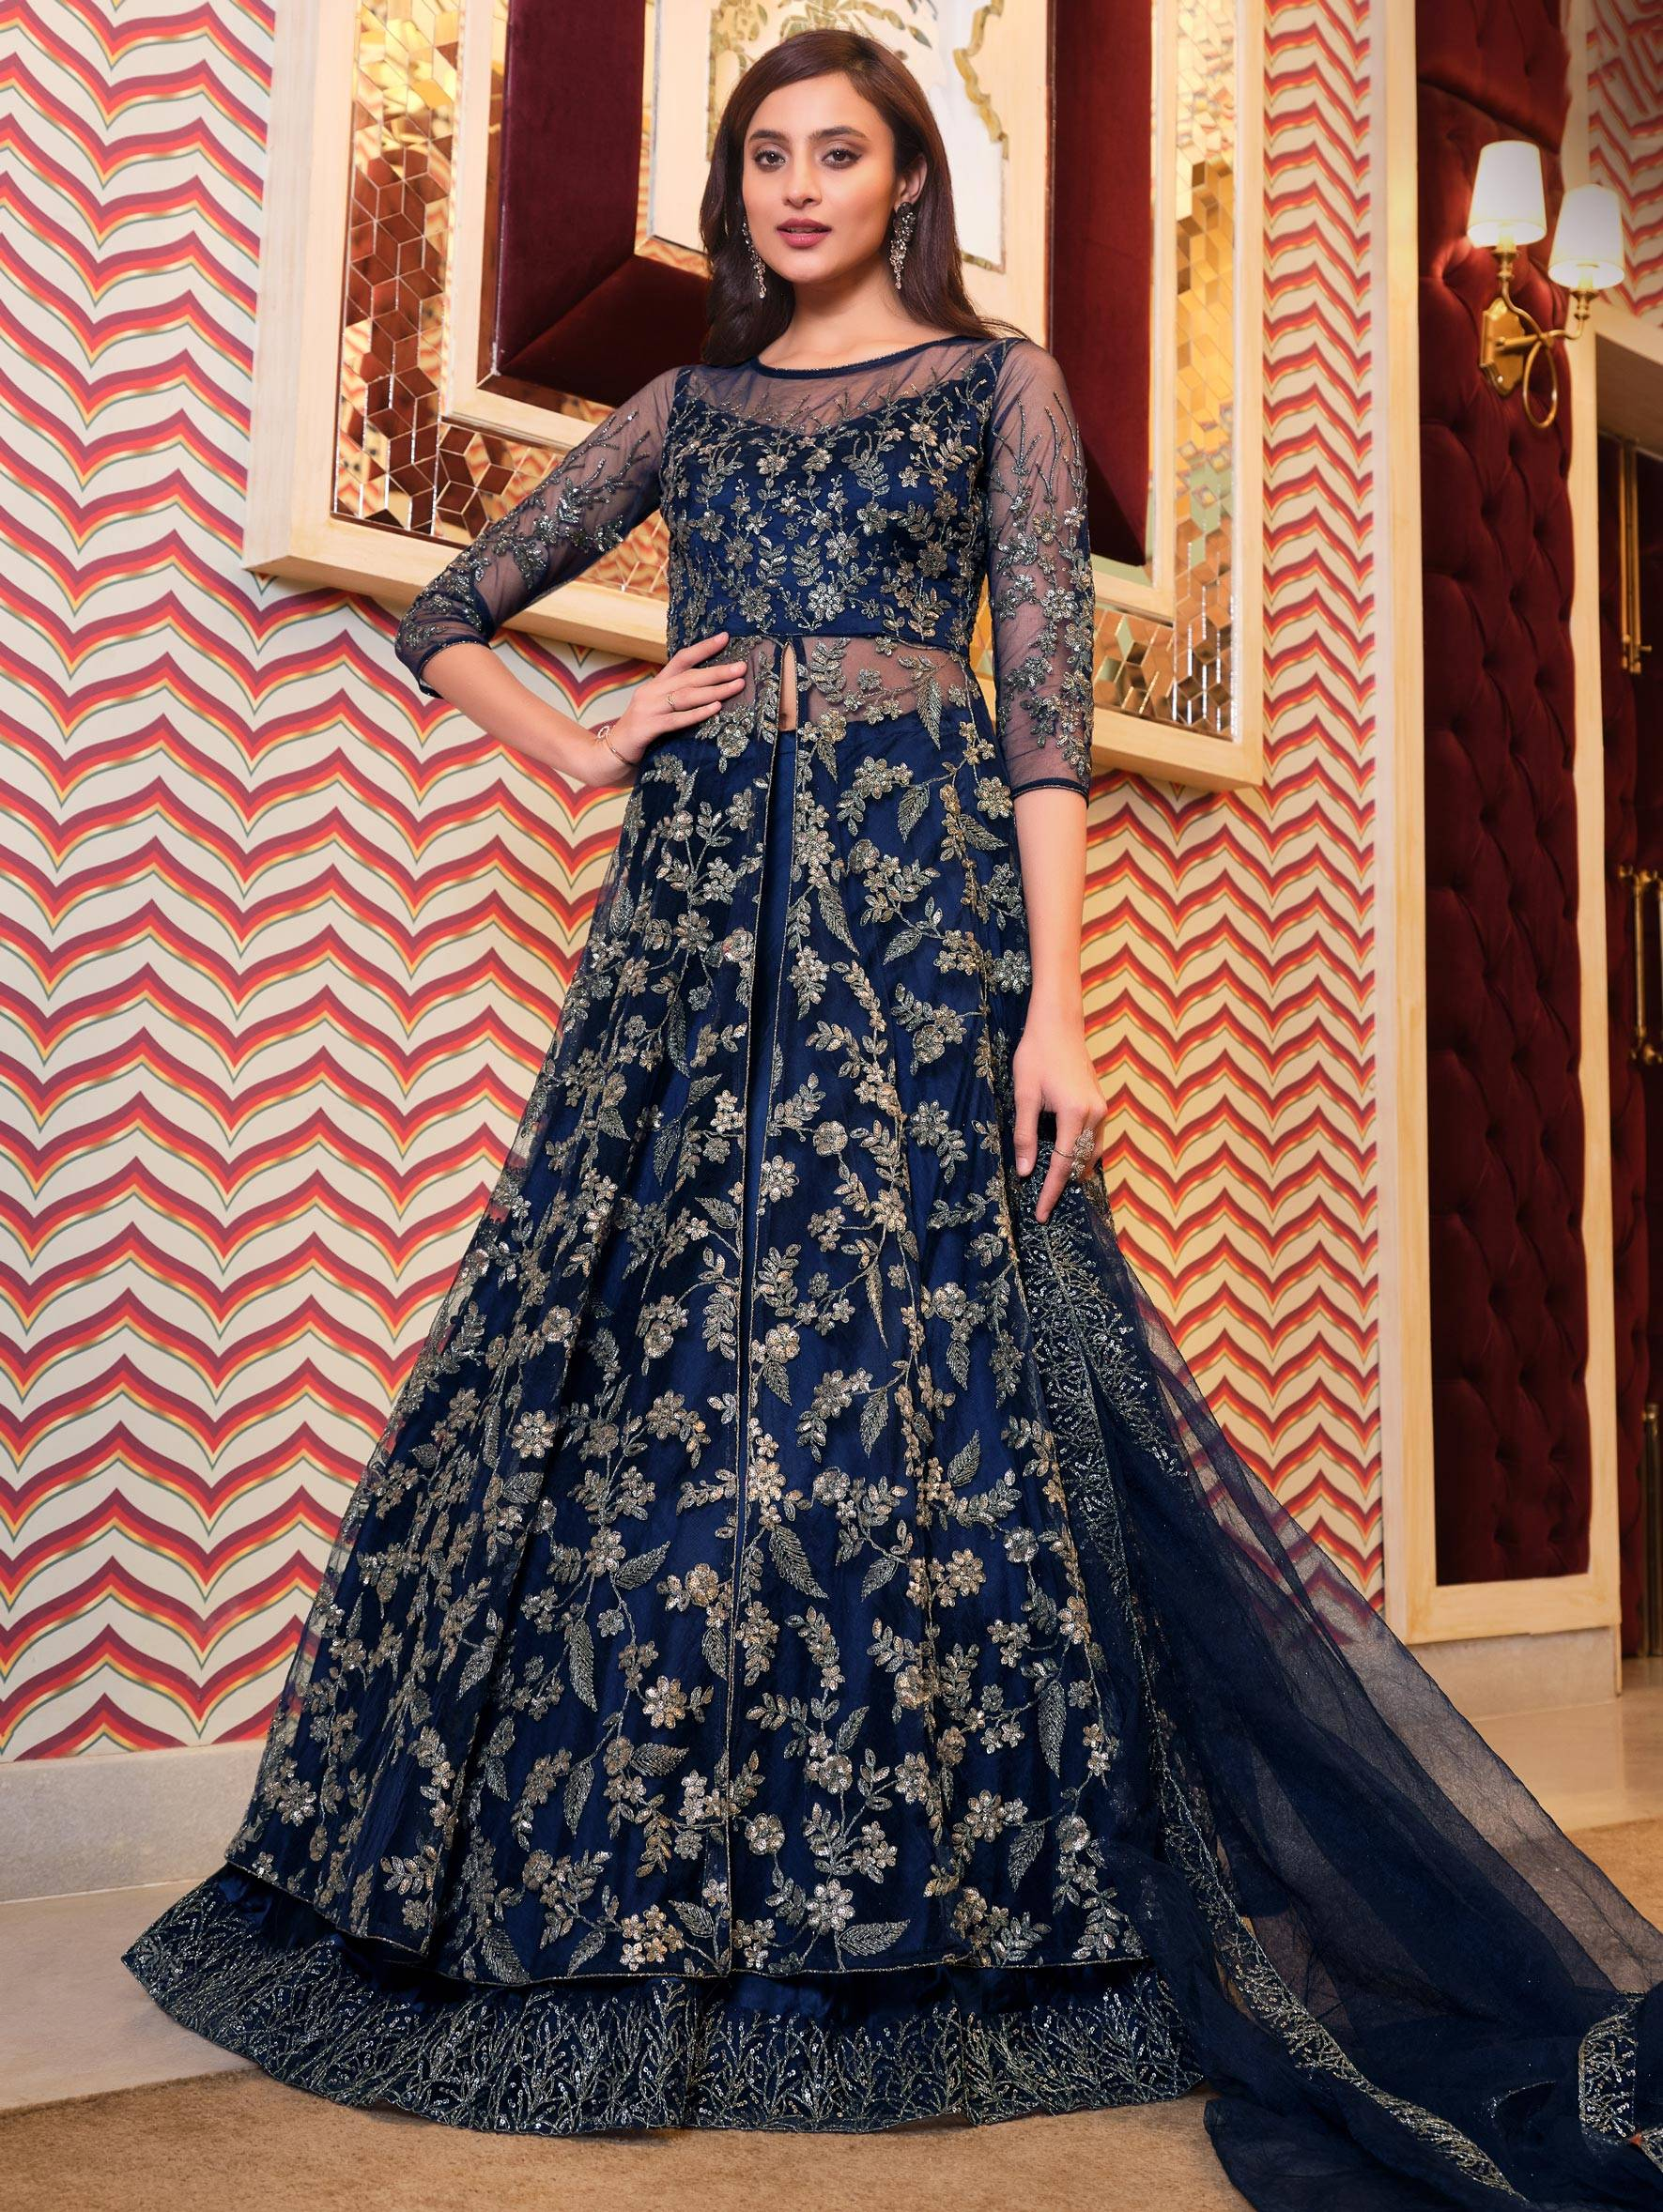 Latest Gown Design 2021 with Price